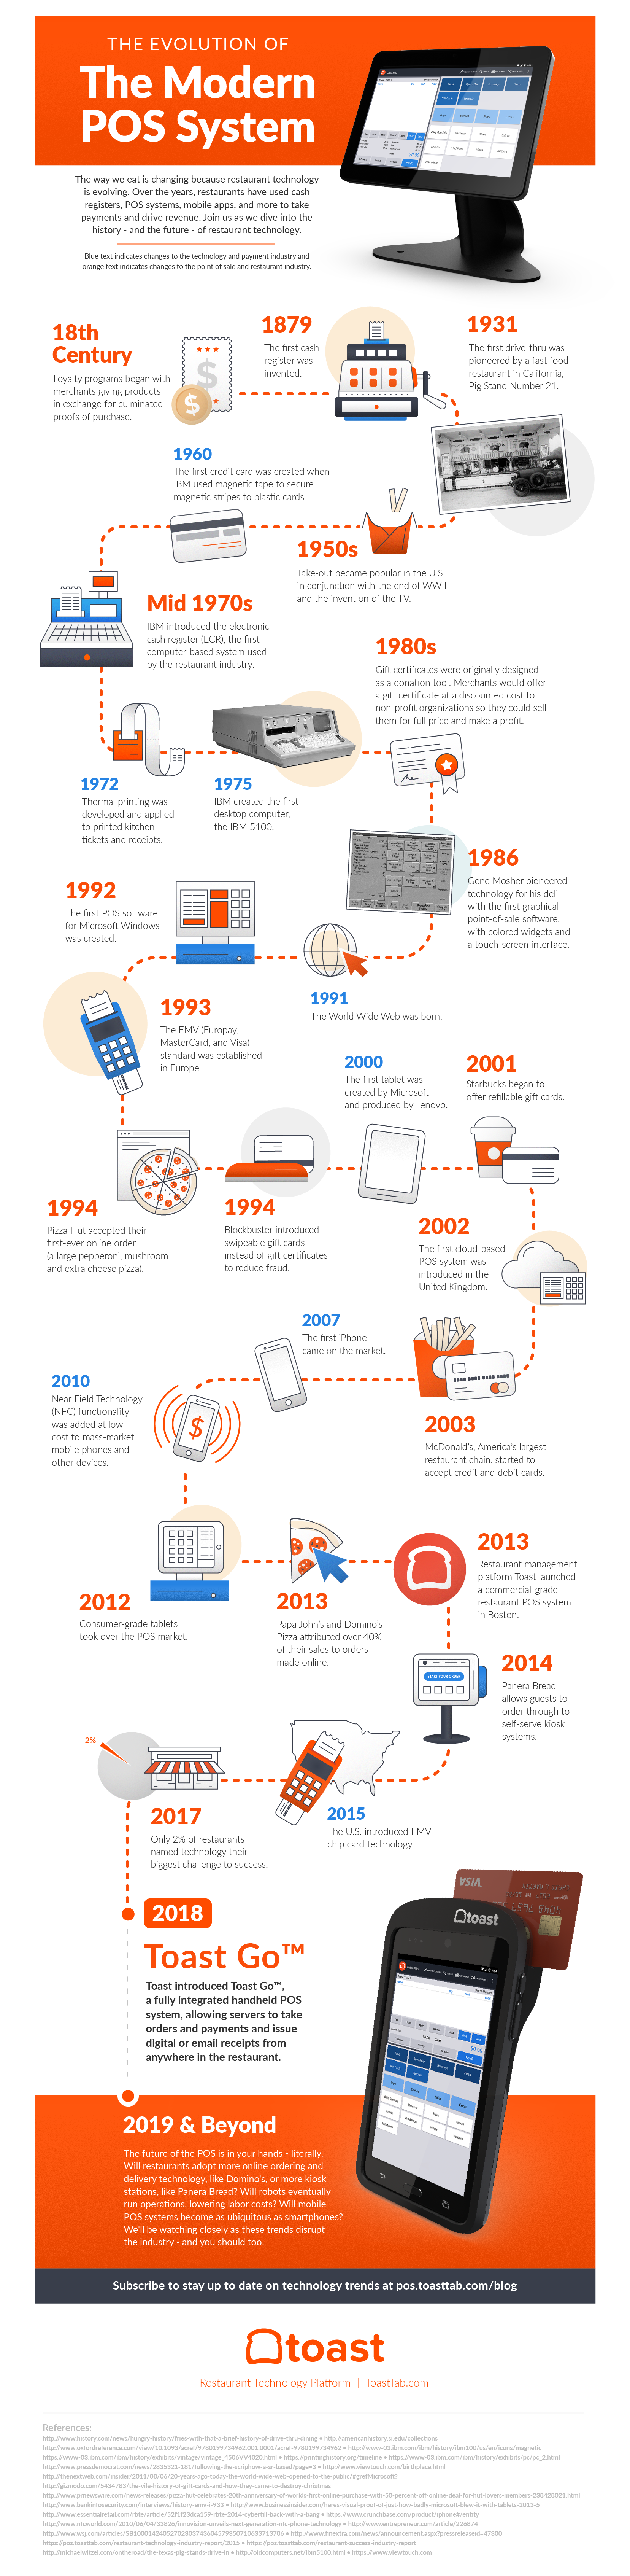 Evolution of Modern POS System Infographic